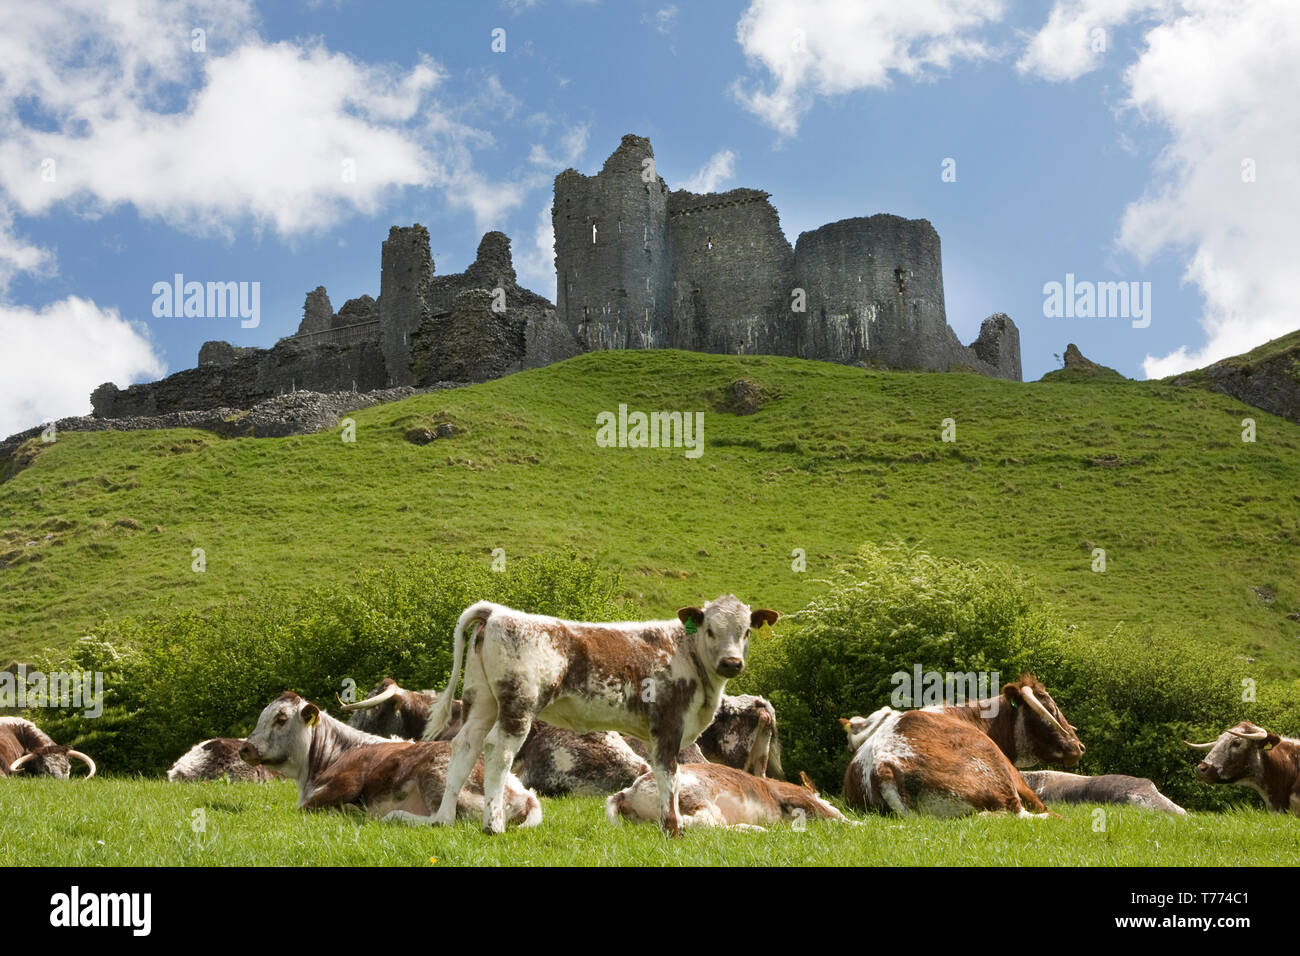 Durham Longhorn cattle grazing at foot of Carreg Cennen Castle, Black Mountains, Carmarthenshire, South Wales Stock Photo